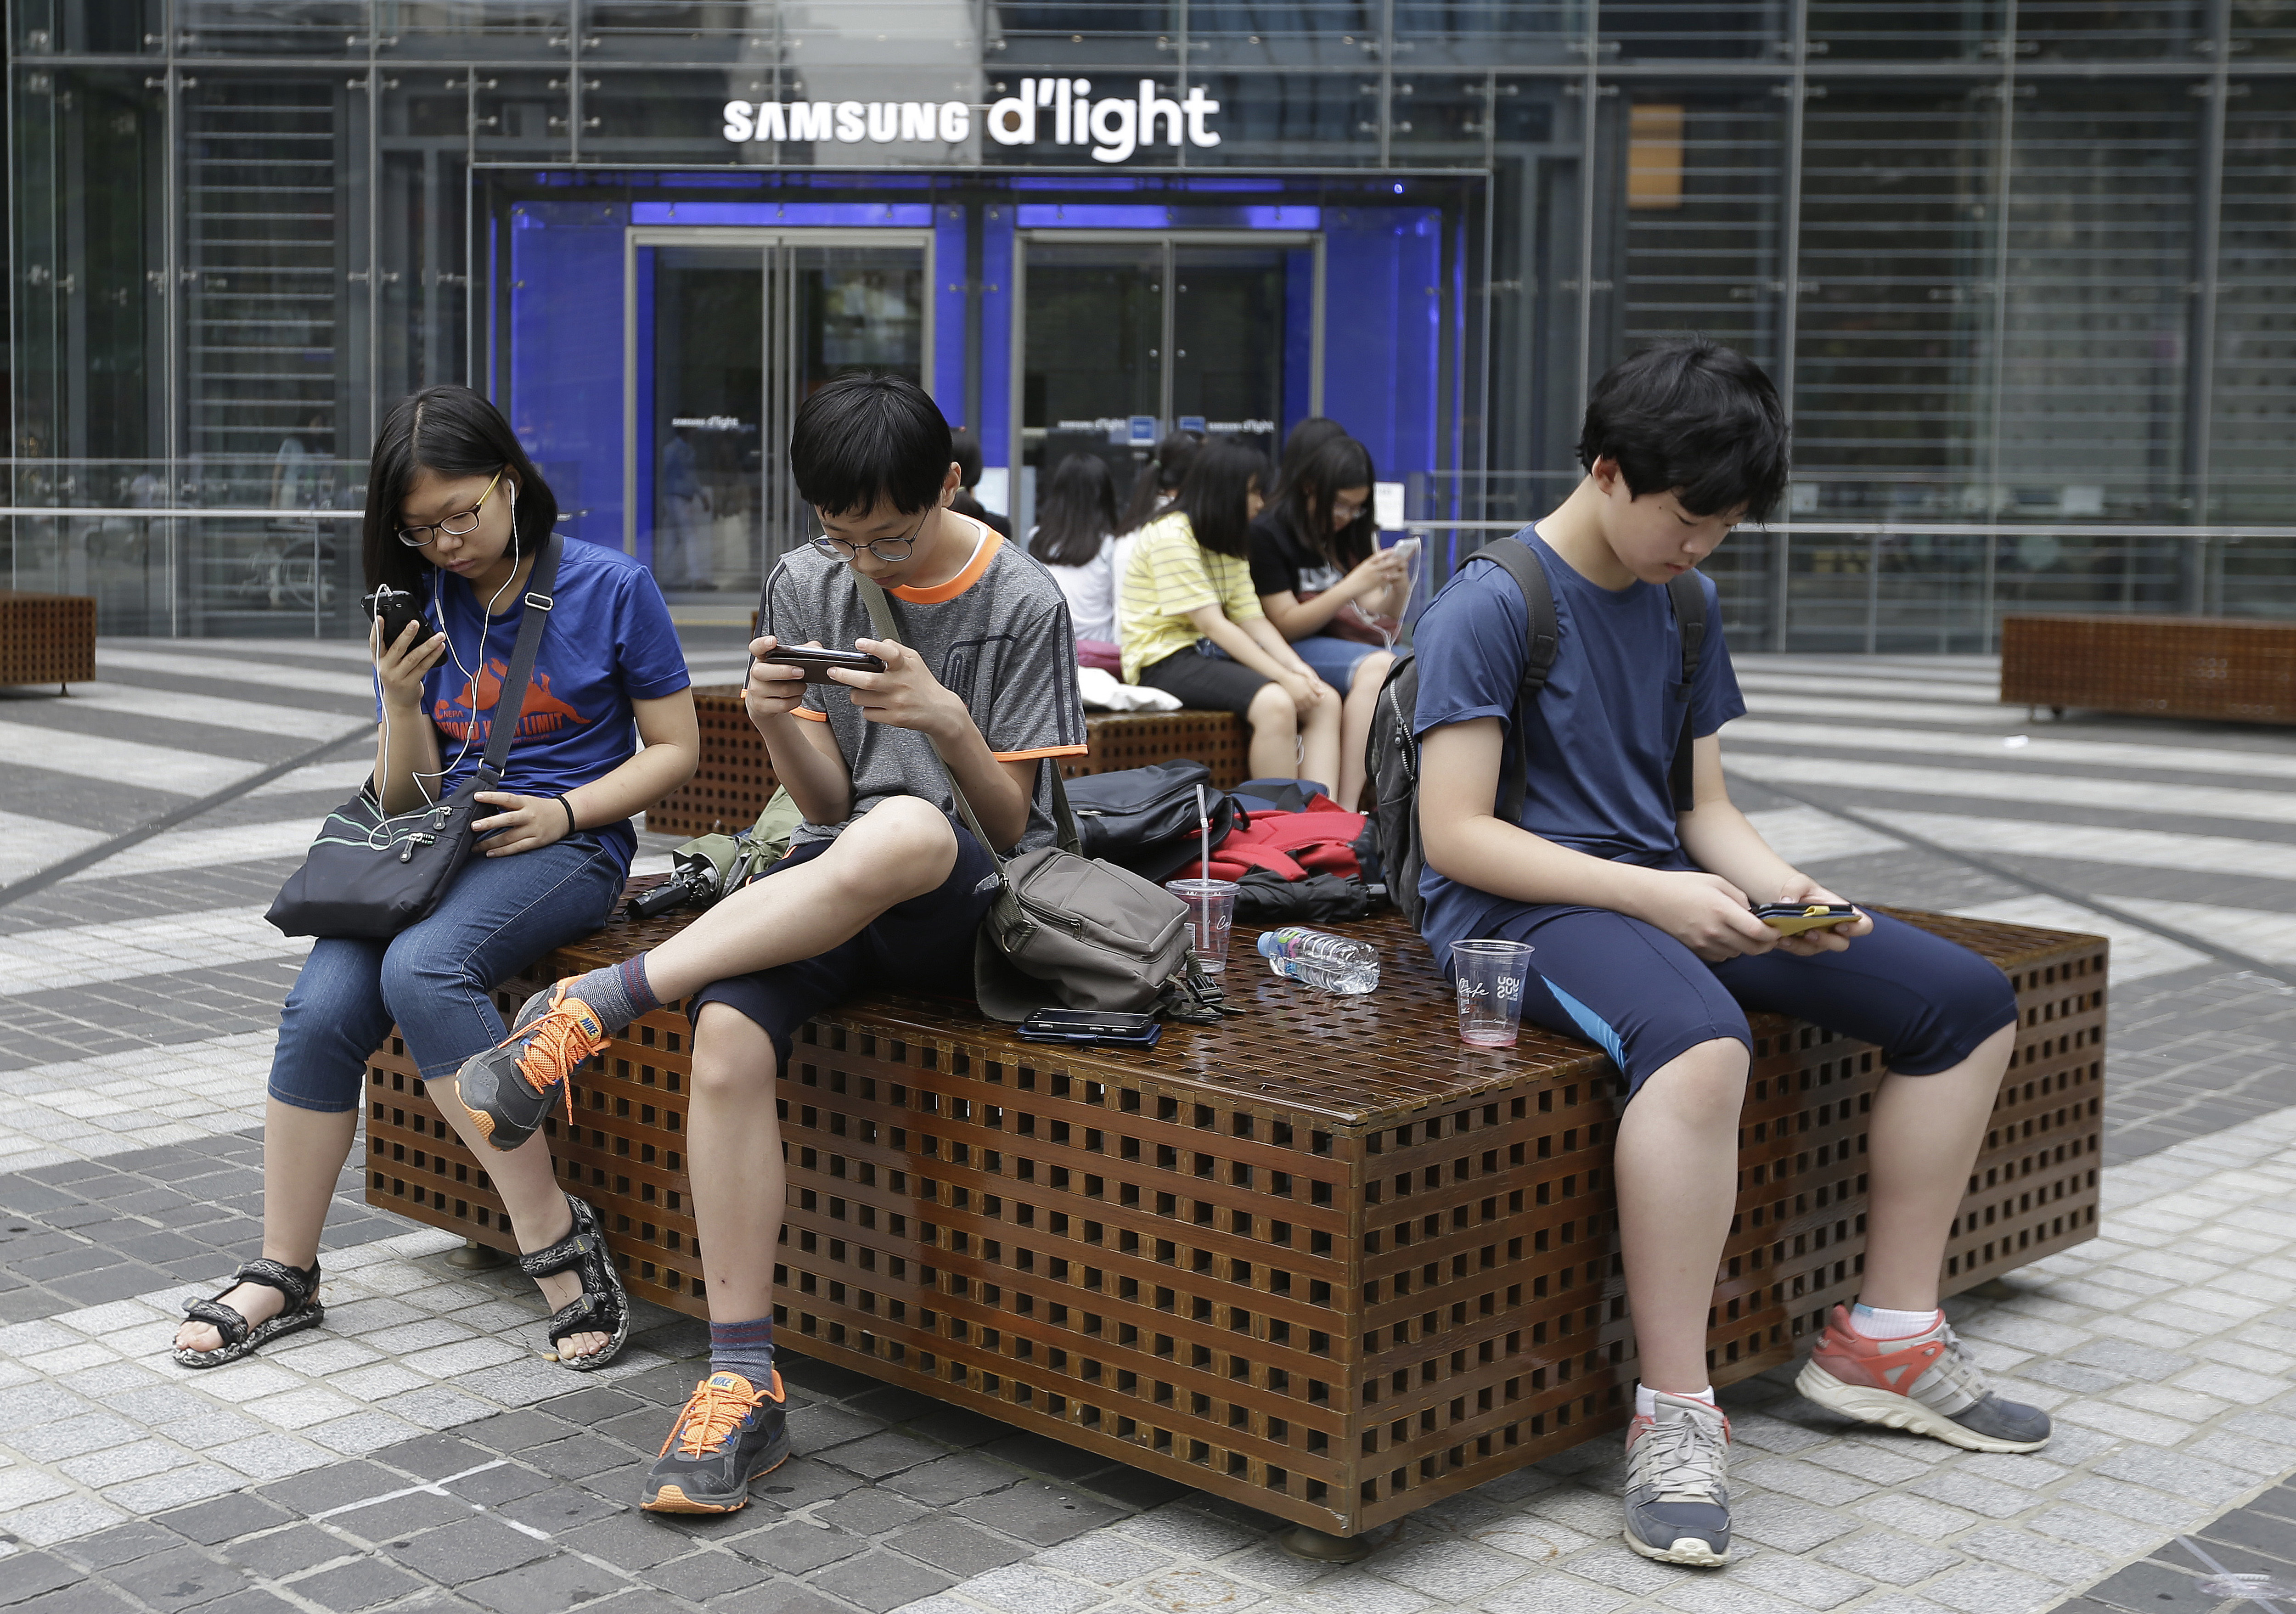 Middle school students use their smartphones in Seoul, South Korea, July 7, 2016. (AP)